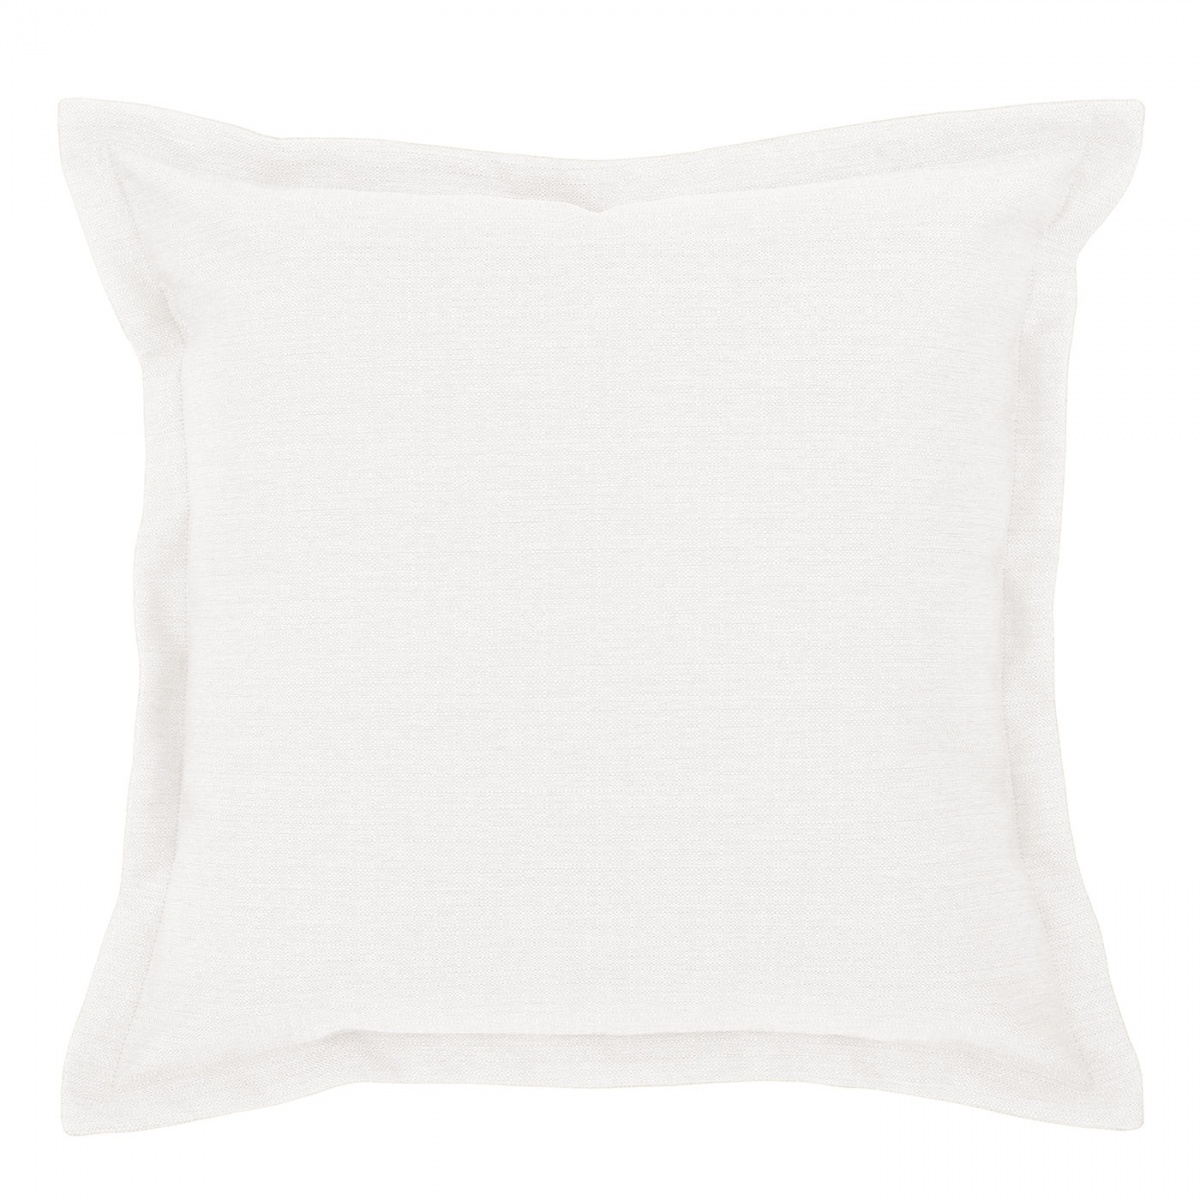 Vegas Ivory Cushion with Flange - 45x45cm